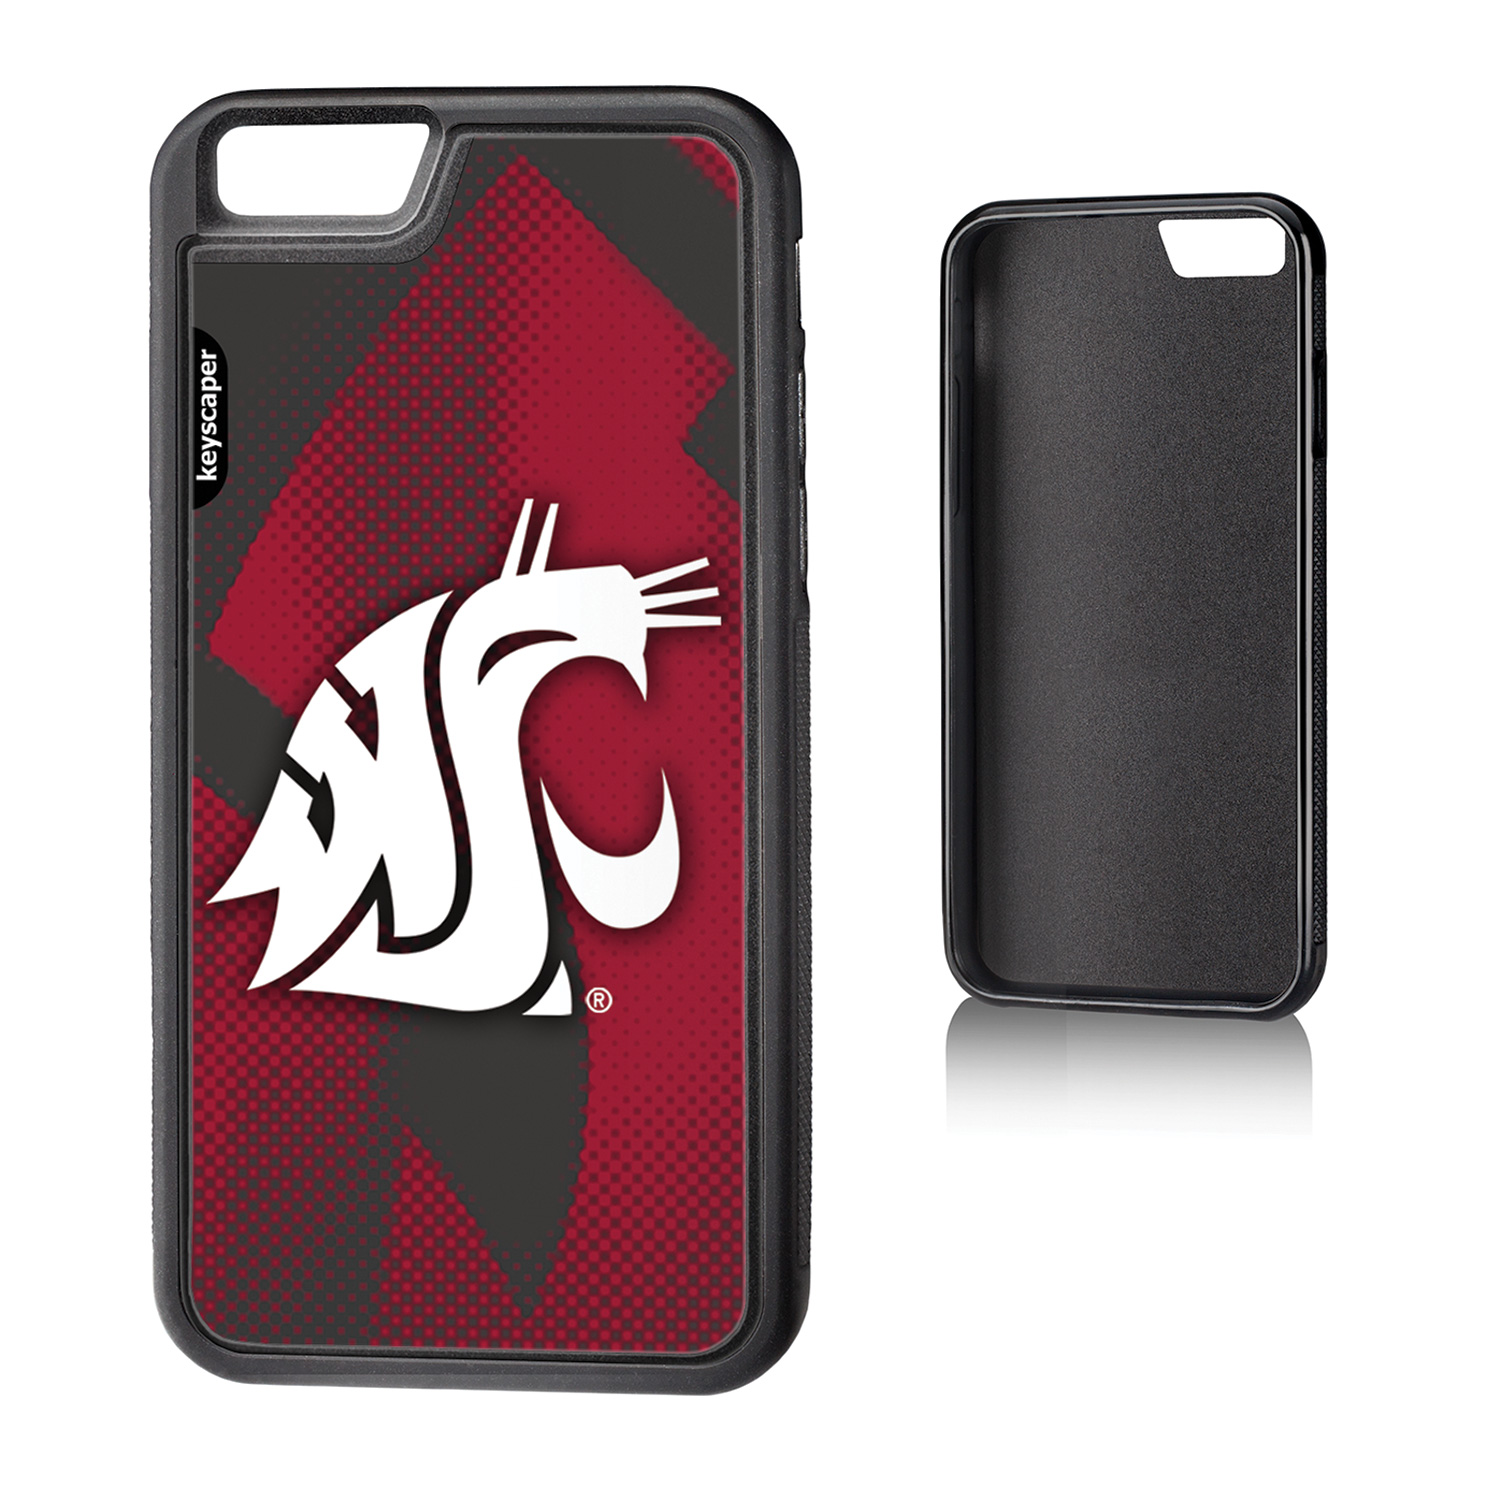 Washington State Cougars iPhone 6 (4.7 inch) Bumper Case